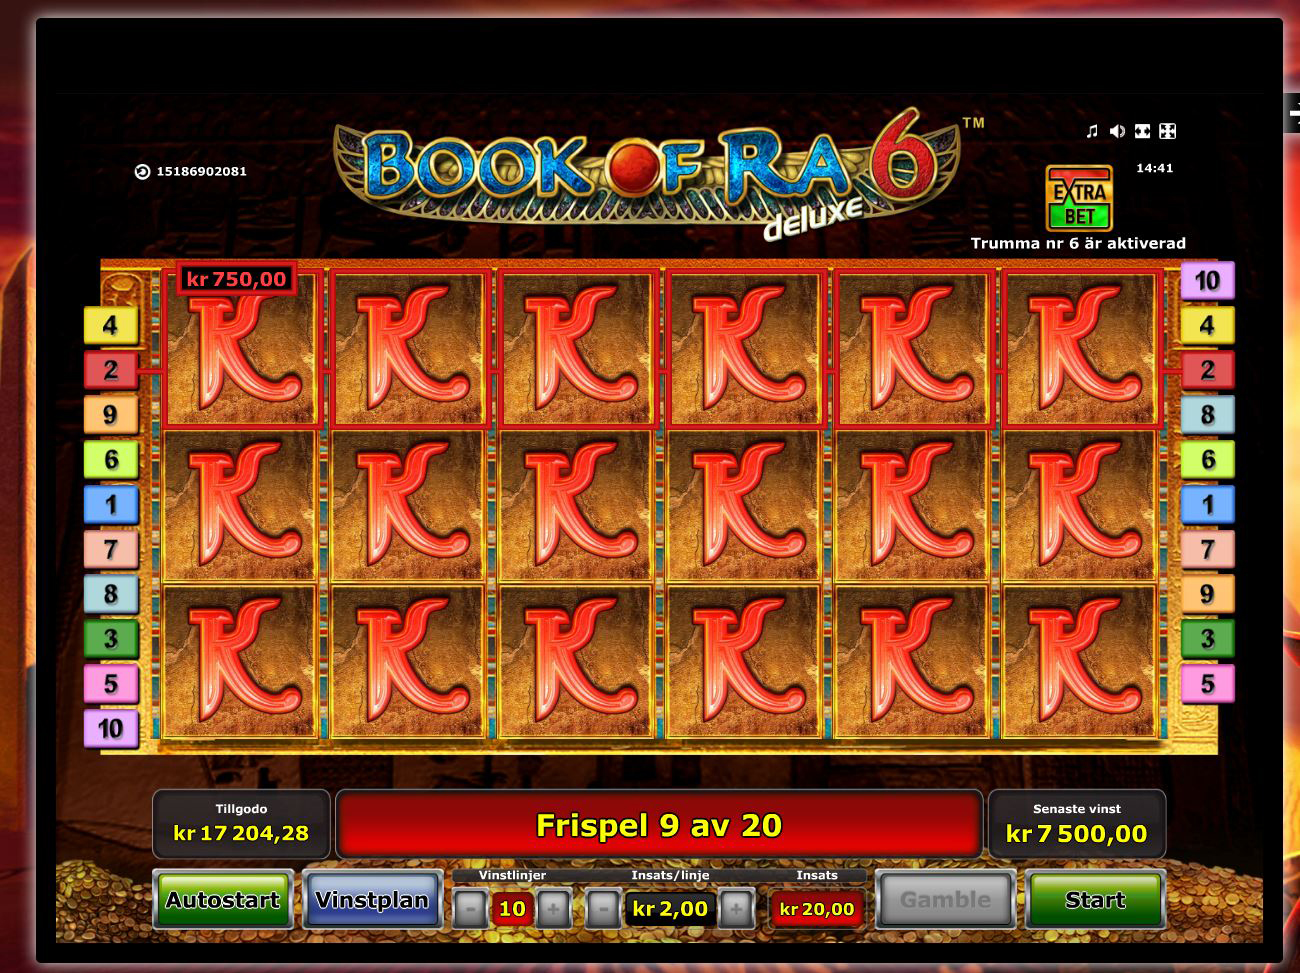 book of ra casino automatenspiel